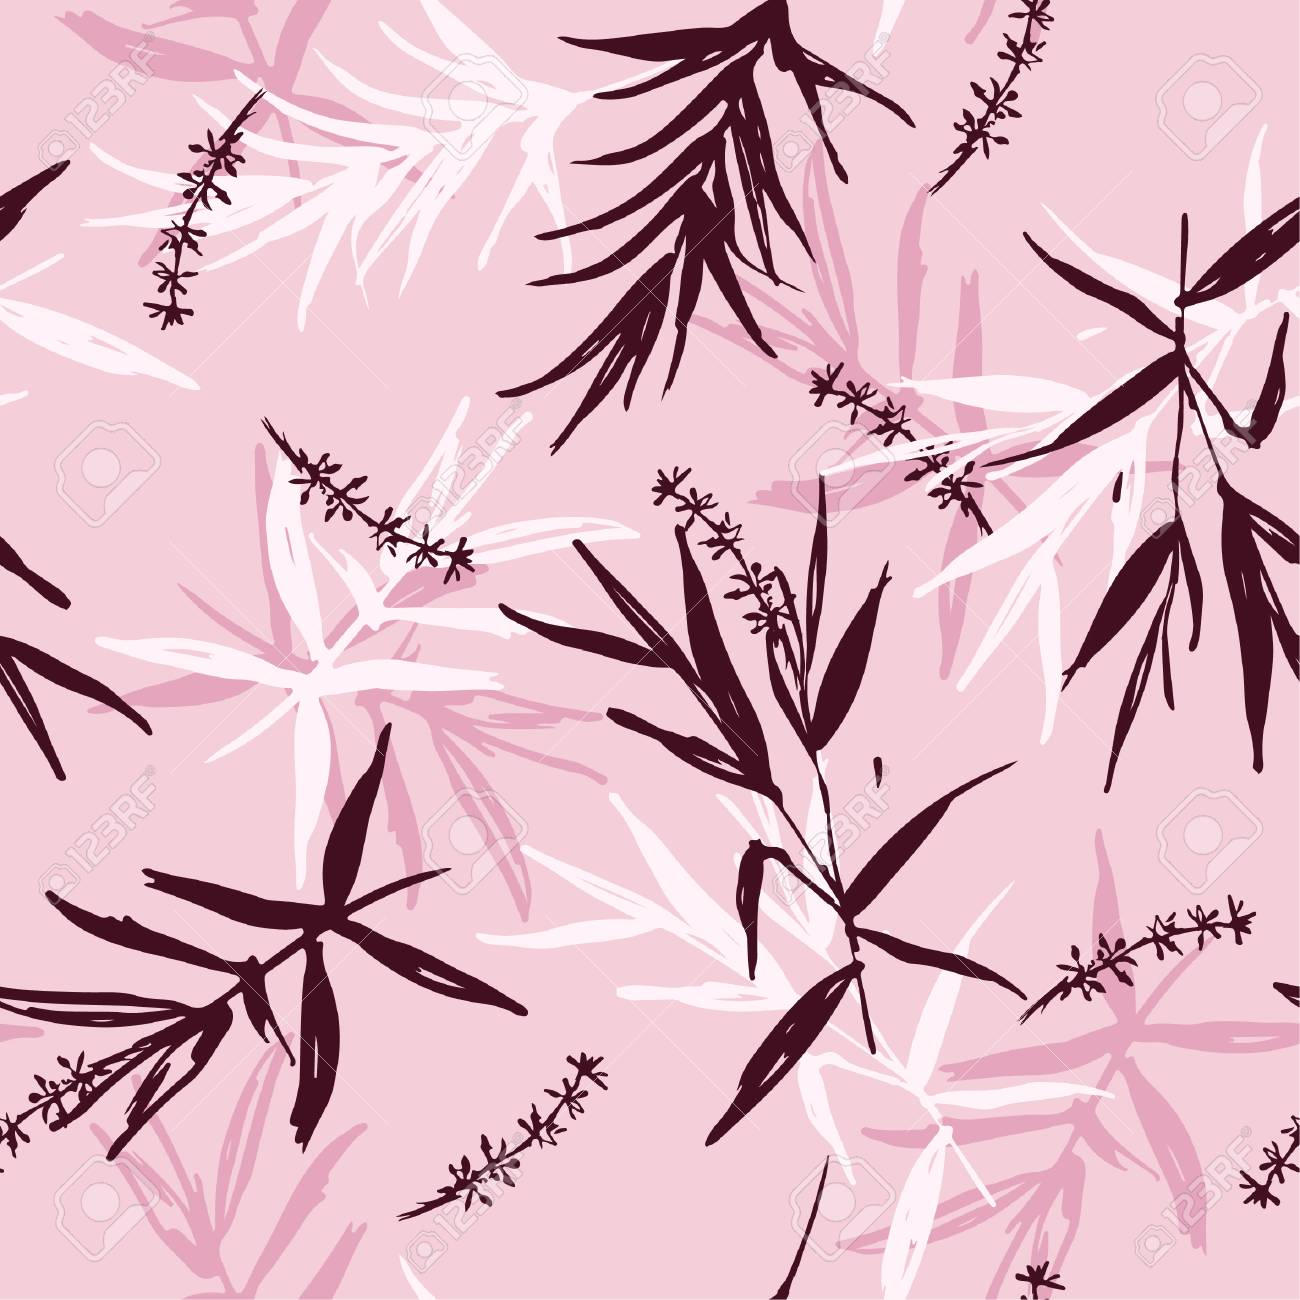 109481130 sweet seamless pattern of brush bamboo leaves and flower oriental style design for fashion fabric wa